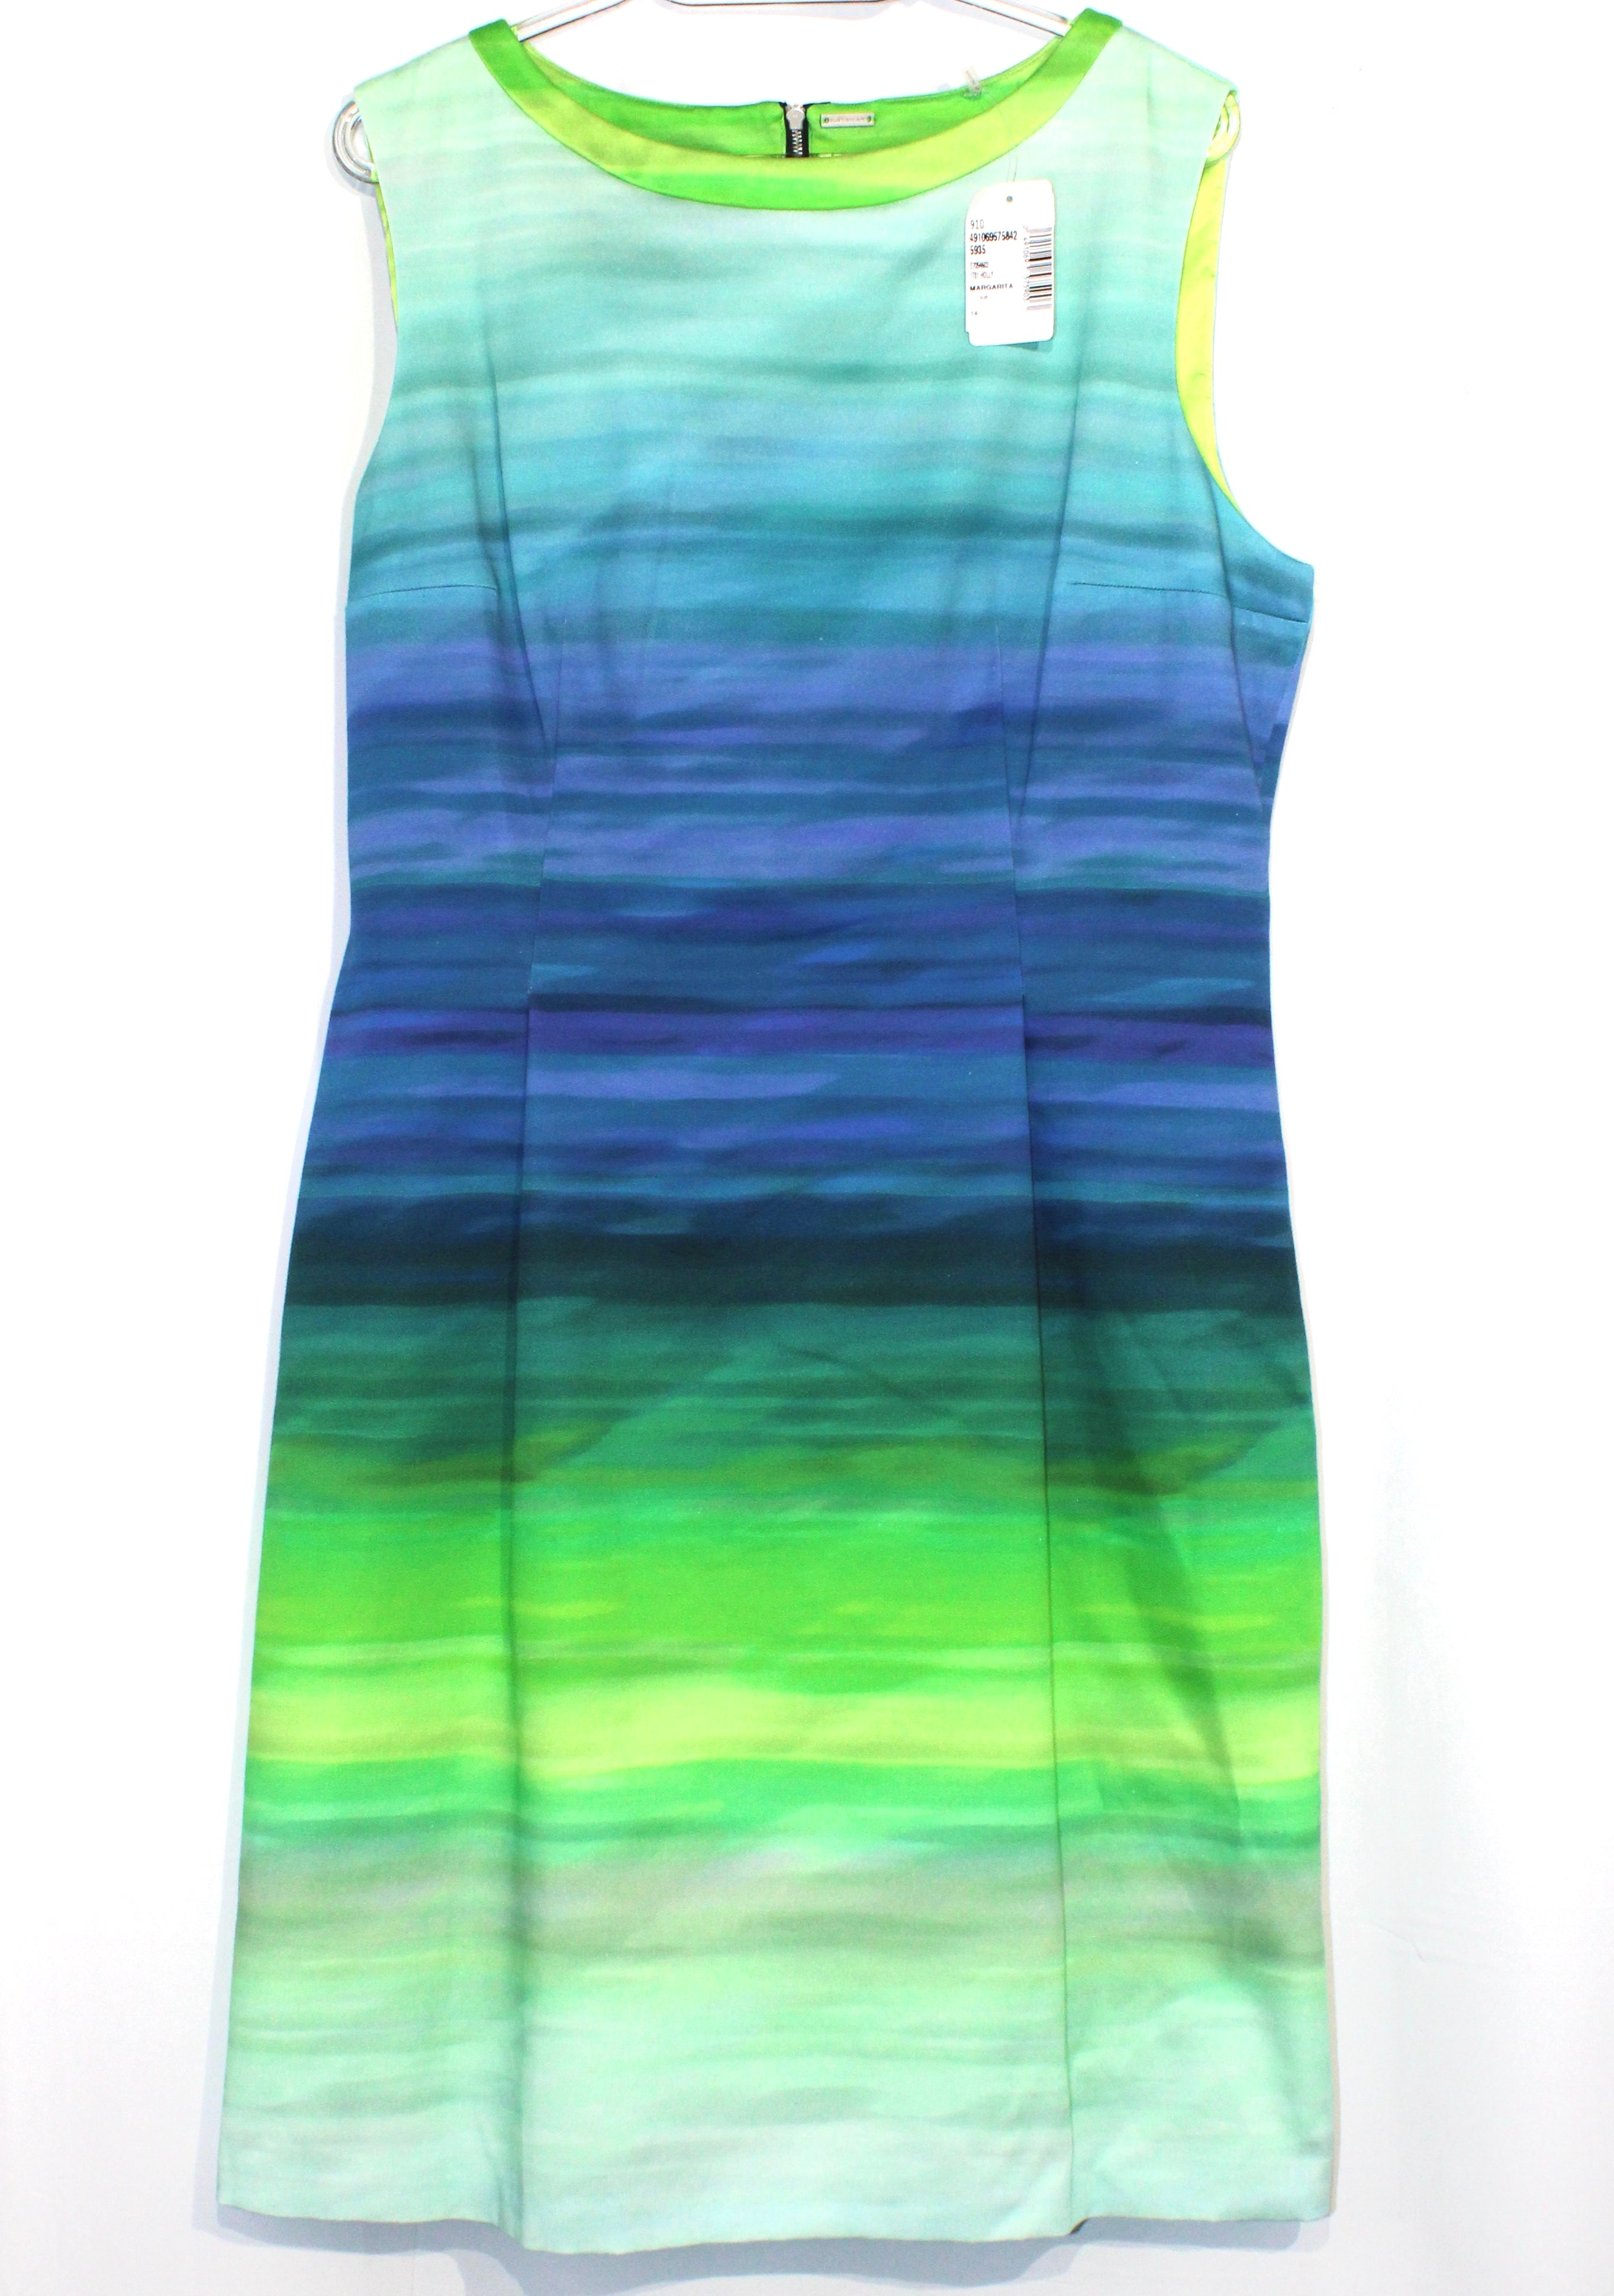 Primary Photo - <P>BRAND: ELIE TAHARI <BR>STYLE: DRESS SHORT SLEEVELESS <BR>COLOR: BLUE GREEN <BR>SIZE: XL/14<BR>SKU: 262-26211-134838<BR><BR></P> <P> </P> <P>NWT</P>